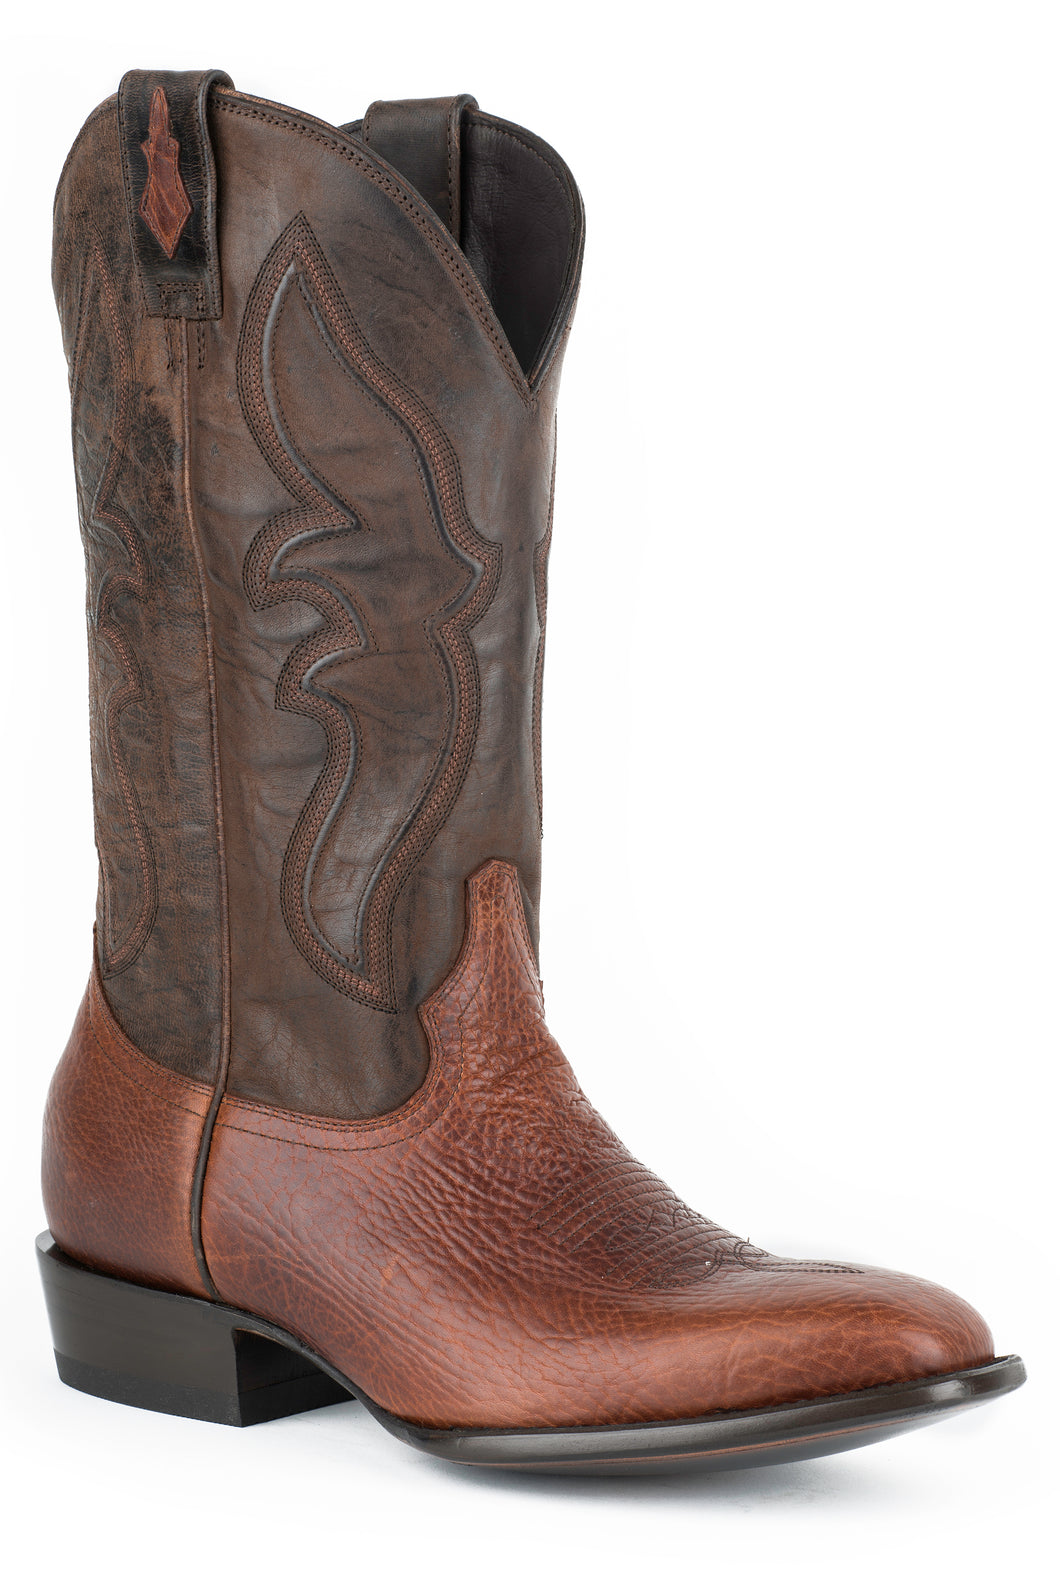 Jbs Davis Boot Mens Boot Burnished Shruken Shldr Vamp Sng Welt